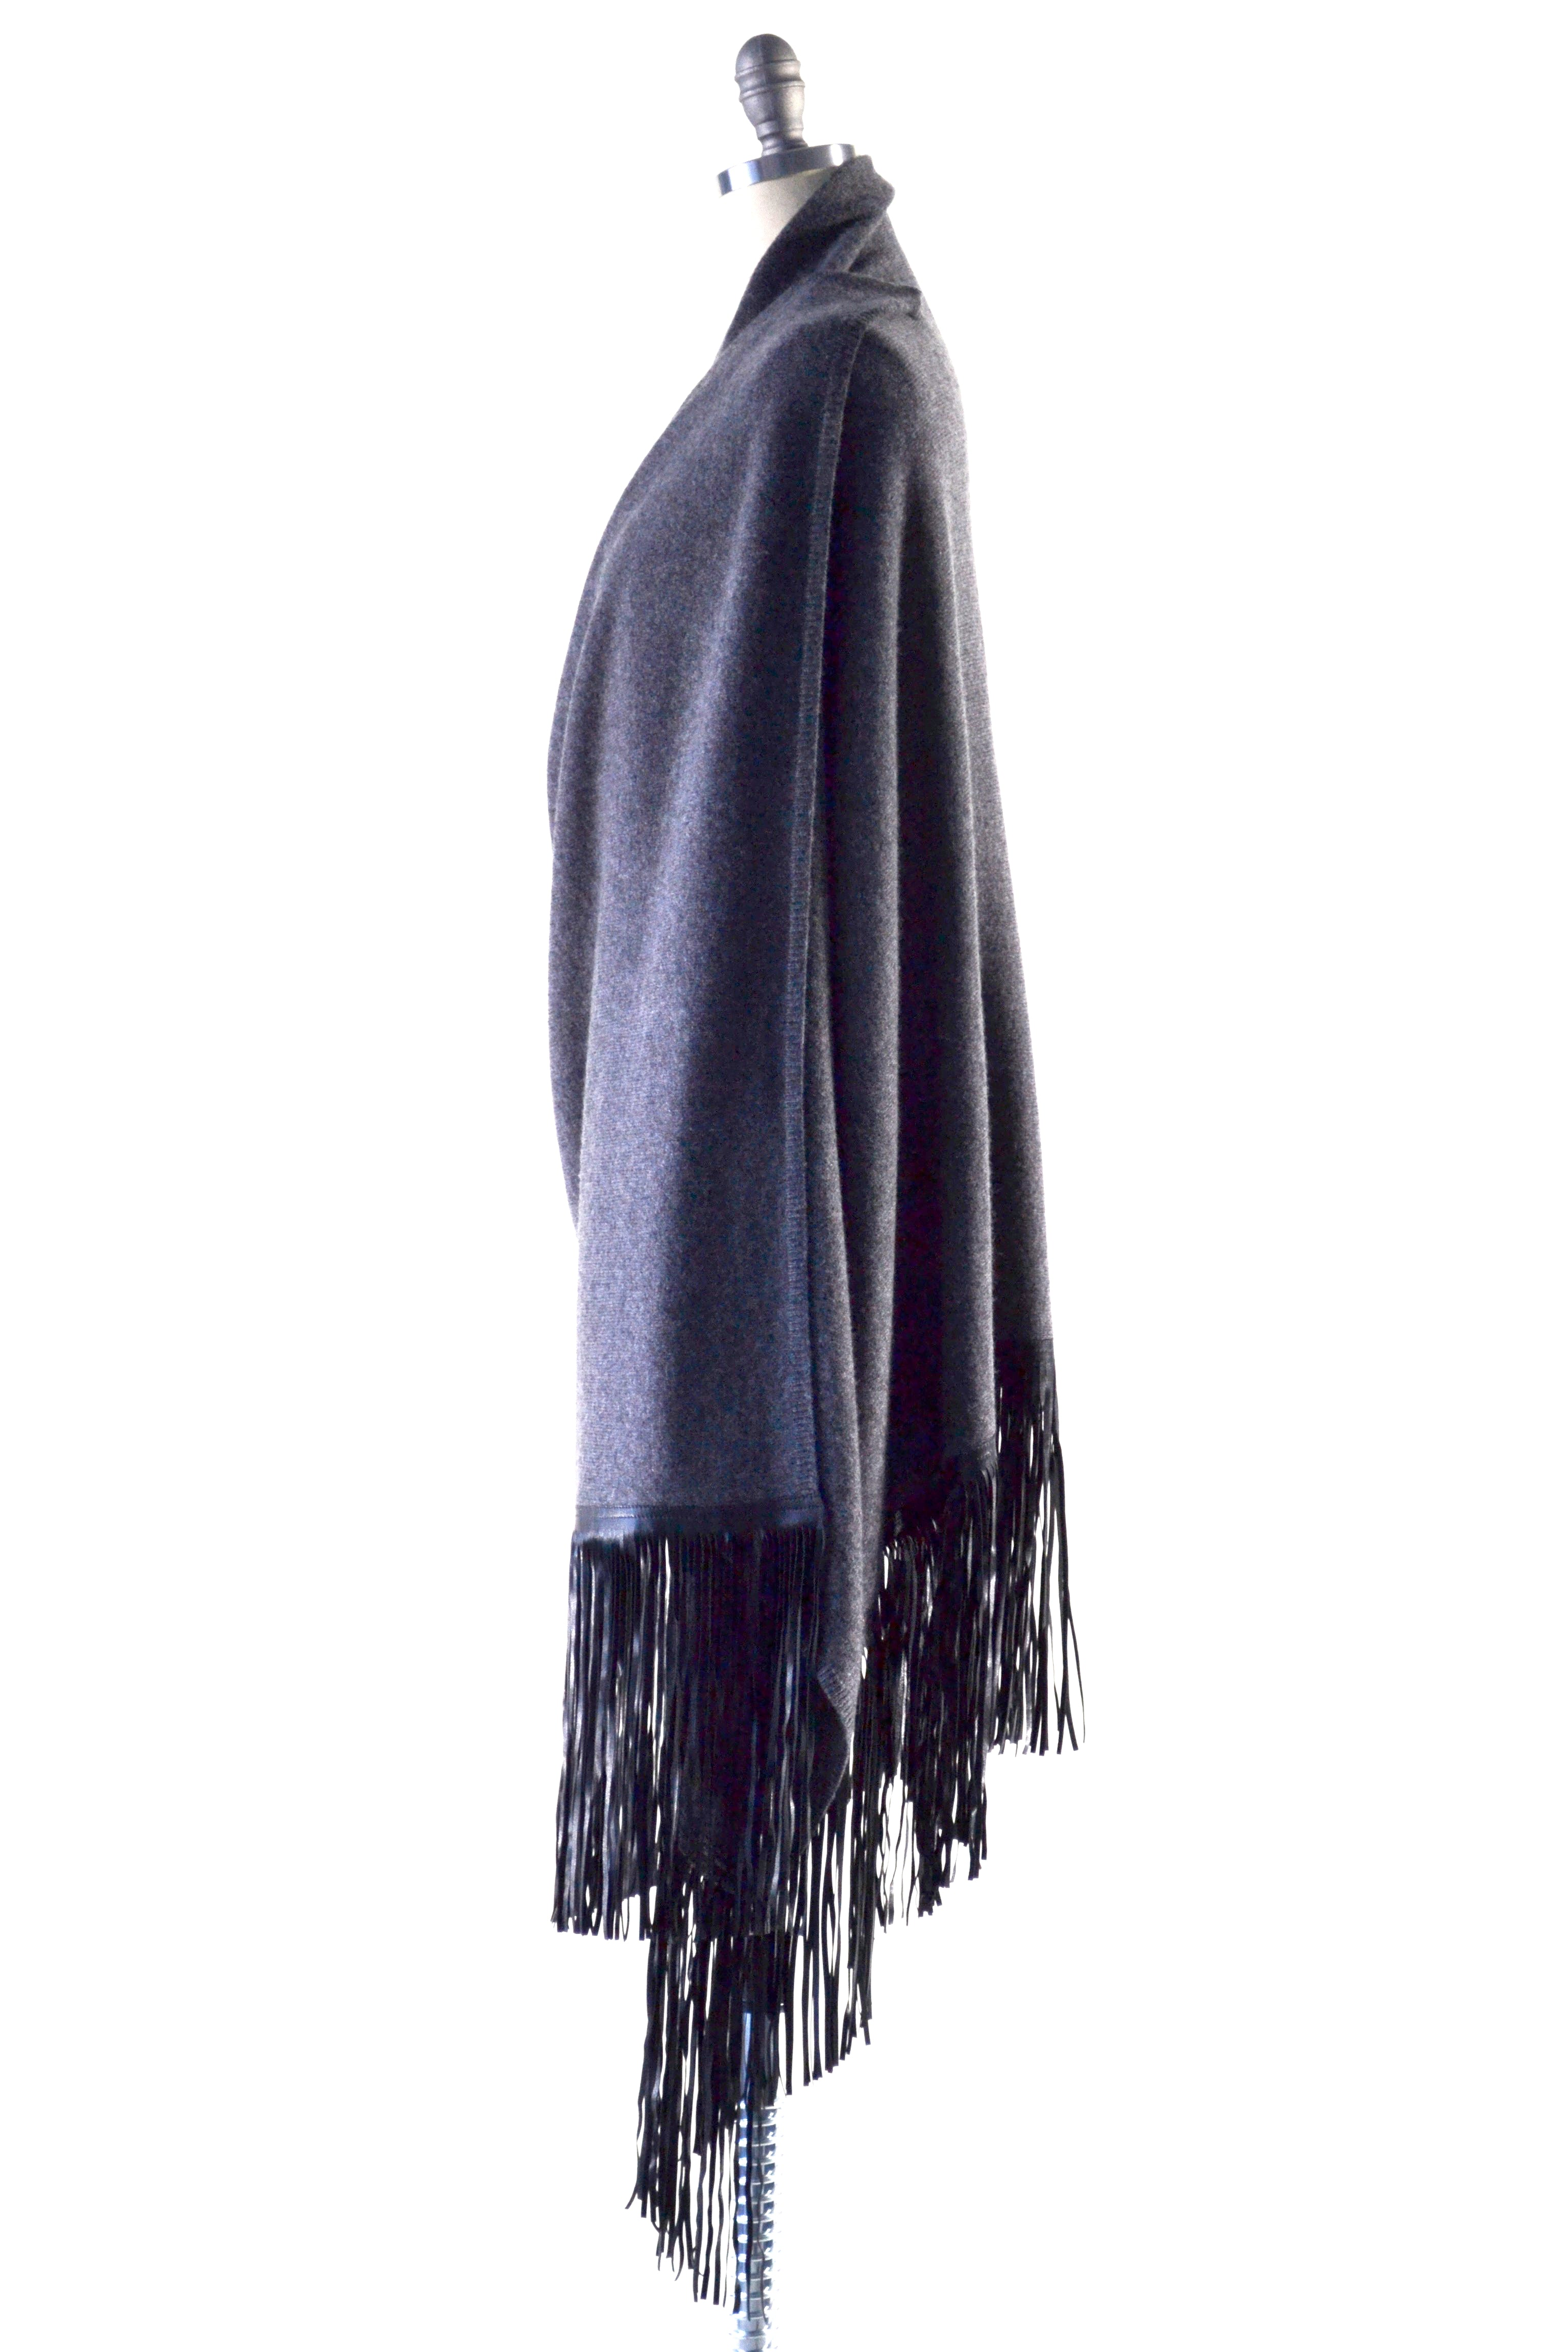 Cashmere Shawl with Long Leather Fringe in Charcoal